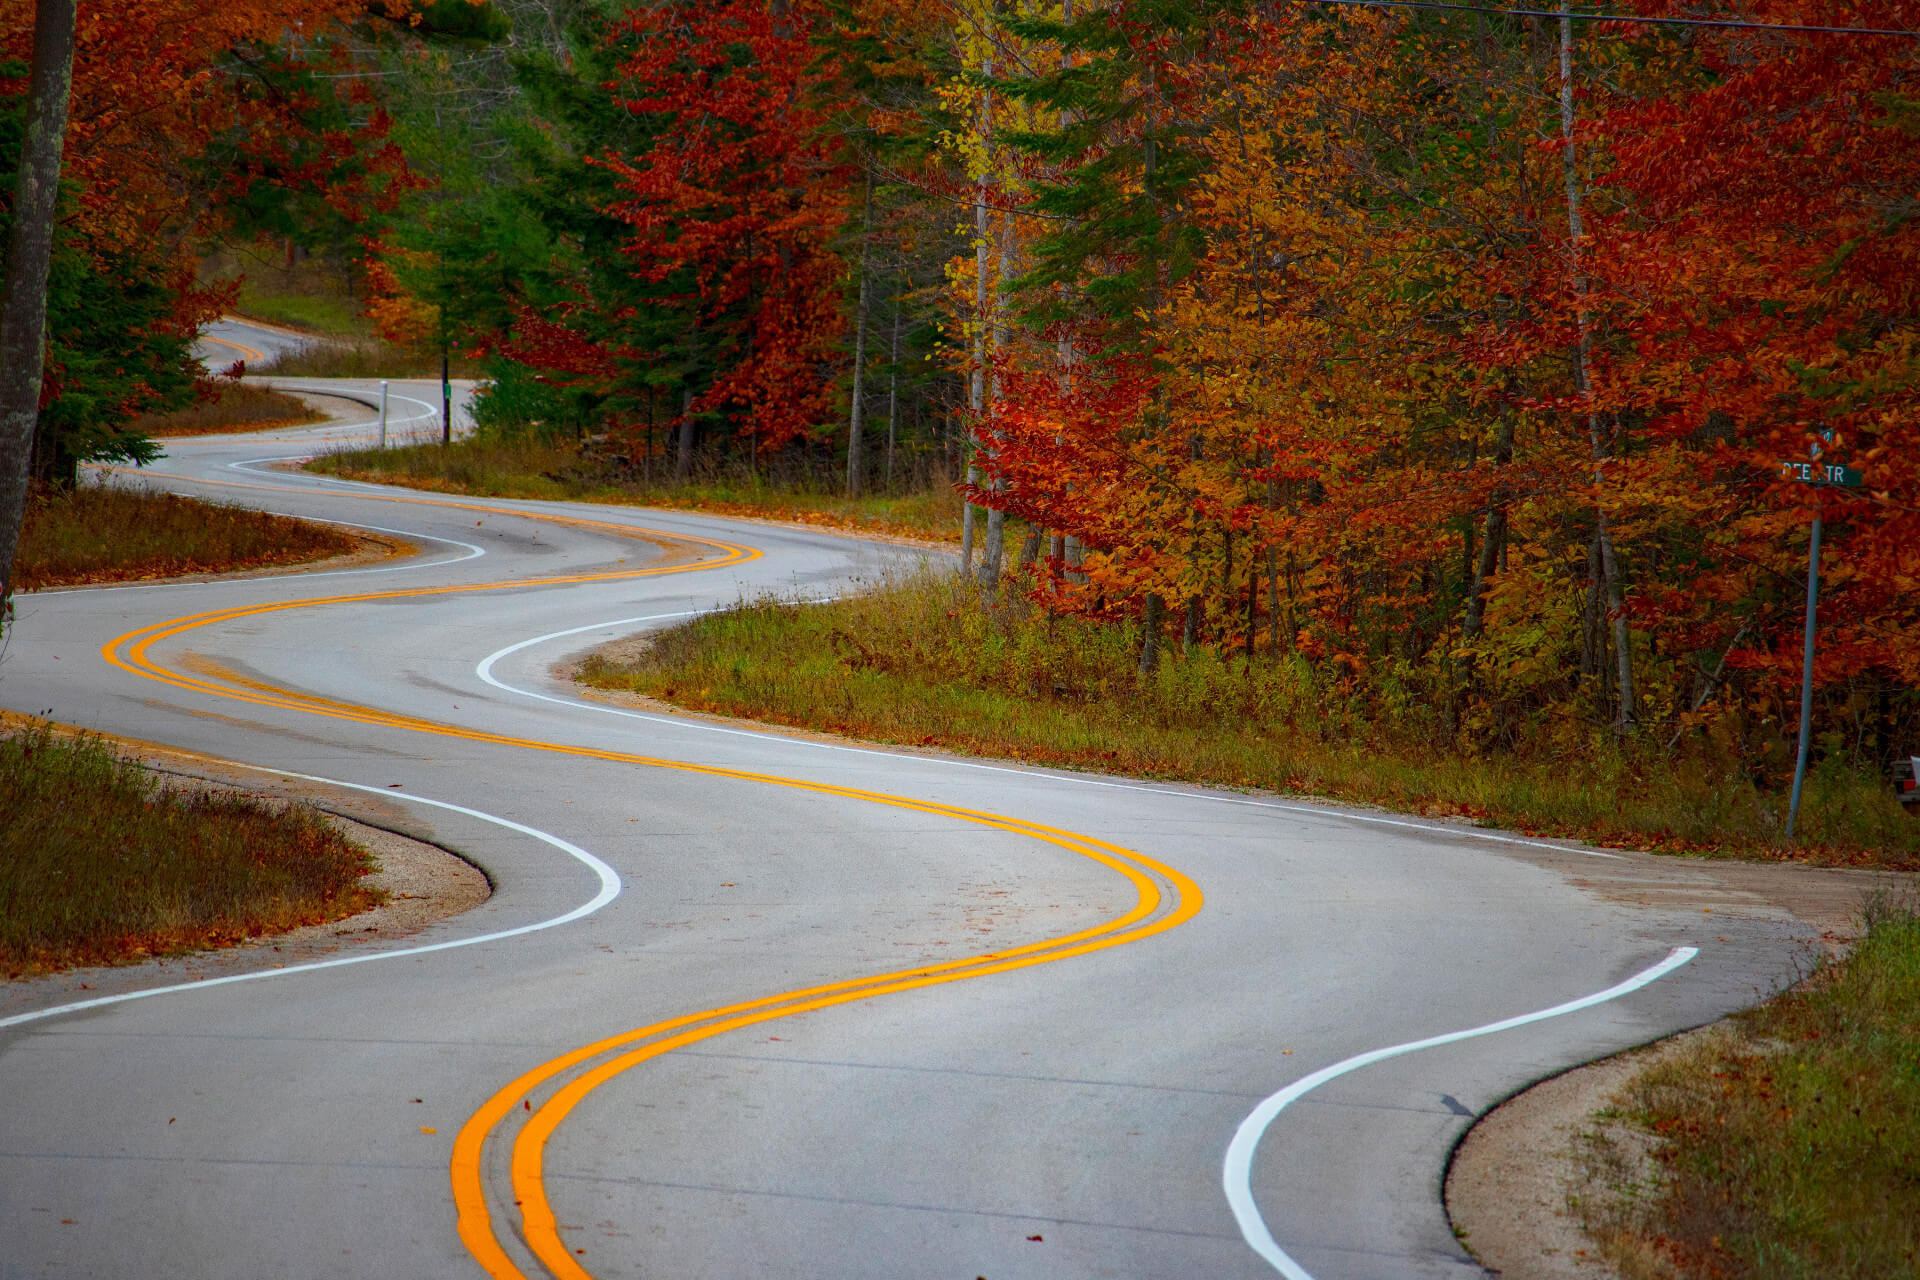 A winding road lined by trees with autumn leaves